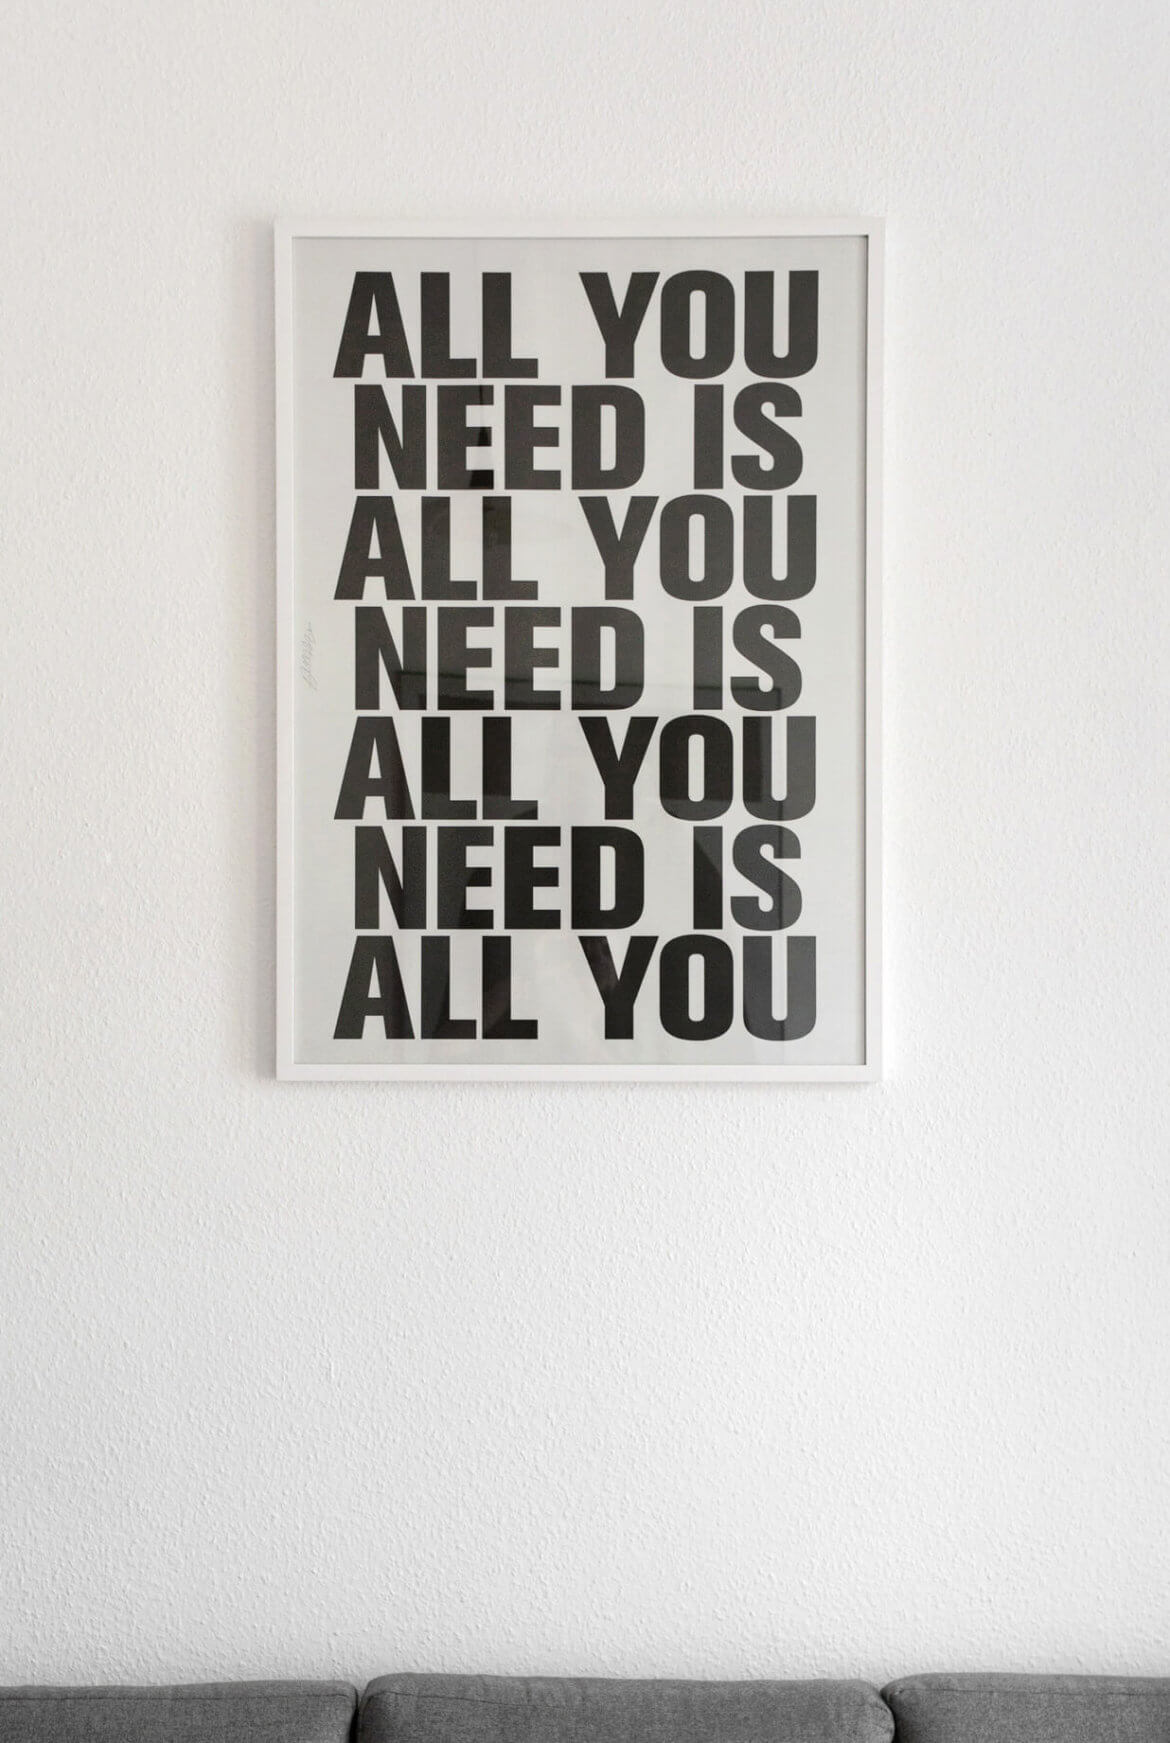 Daniel_Angermann_Poster_All_you_need_1 All you need is all you